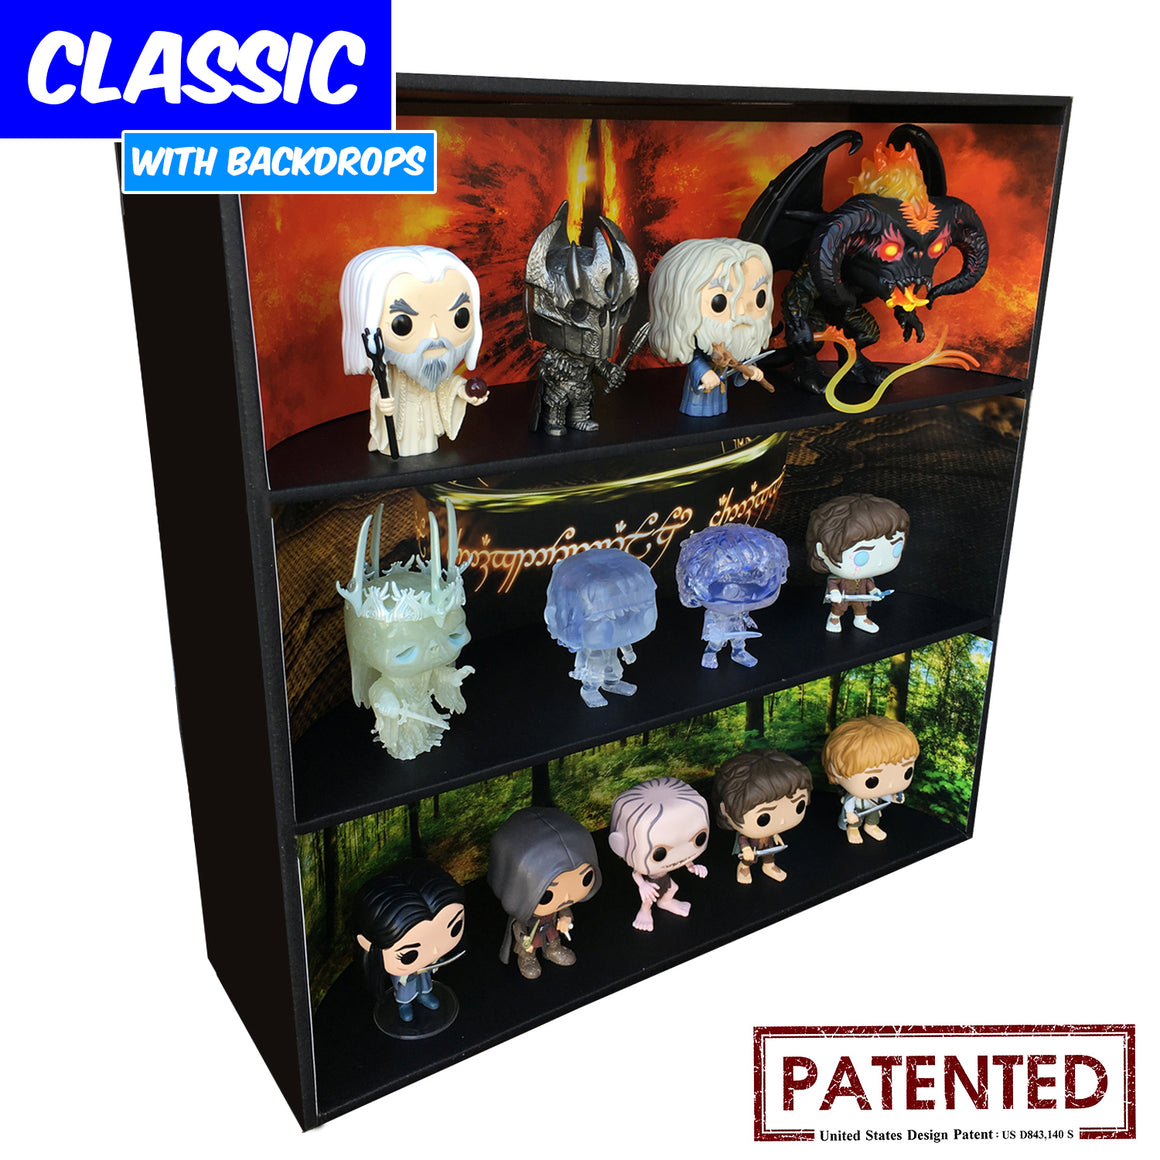 LORD OF THE RINGS - Funko Pop Display with 3 Backdrop Inserts Included, Black Corrugated Cardboard - Display Geek, Inc.